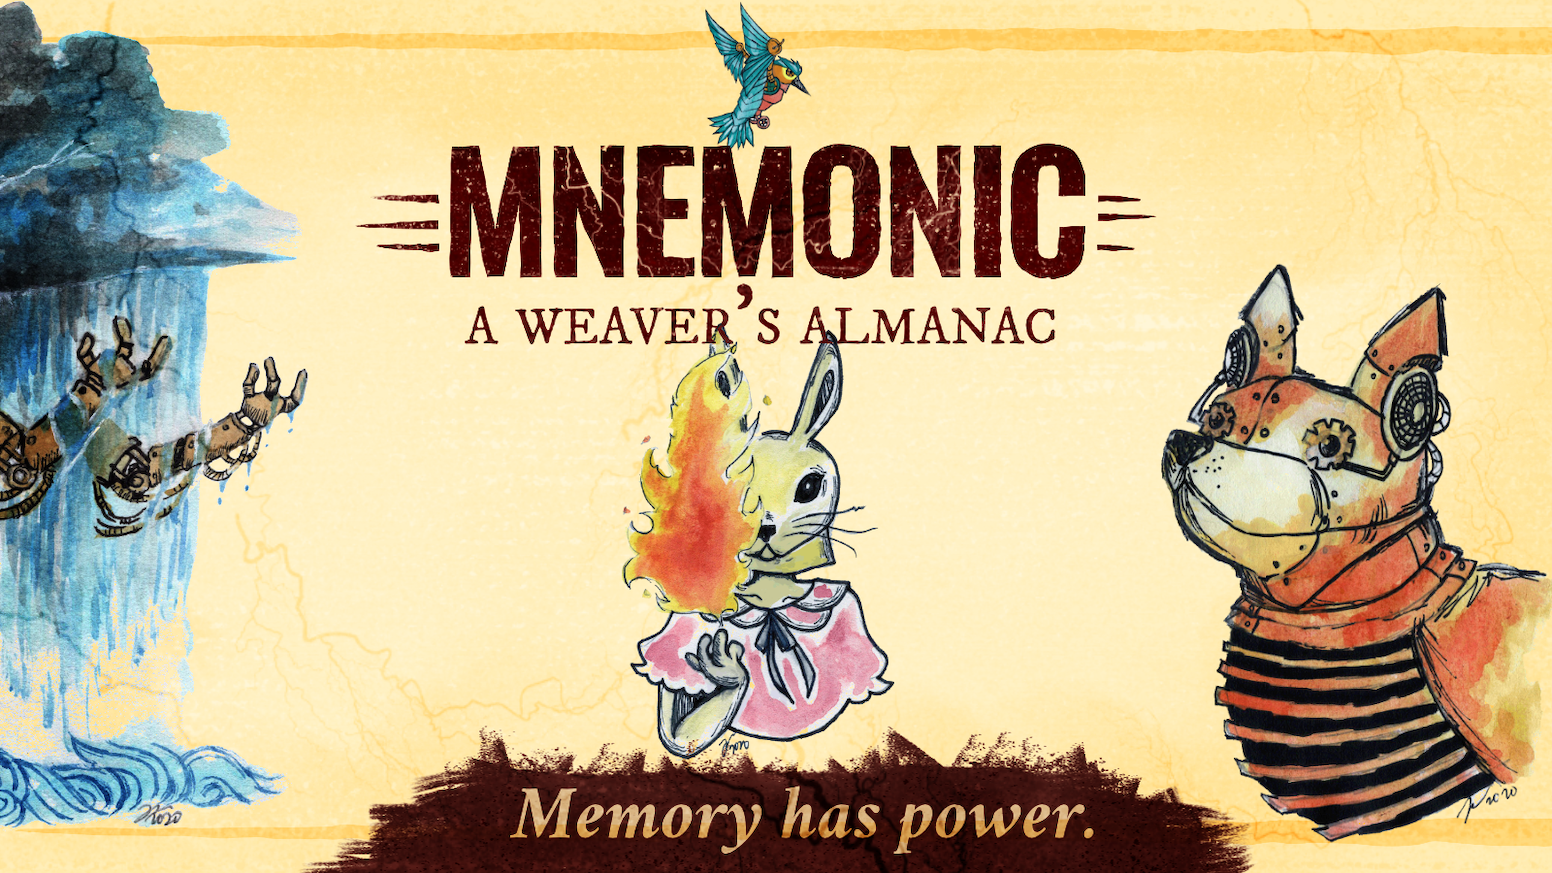 A core rulebook and setting guide for the fantasy world of Mnemonic.